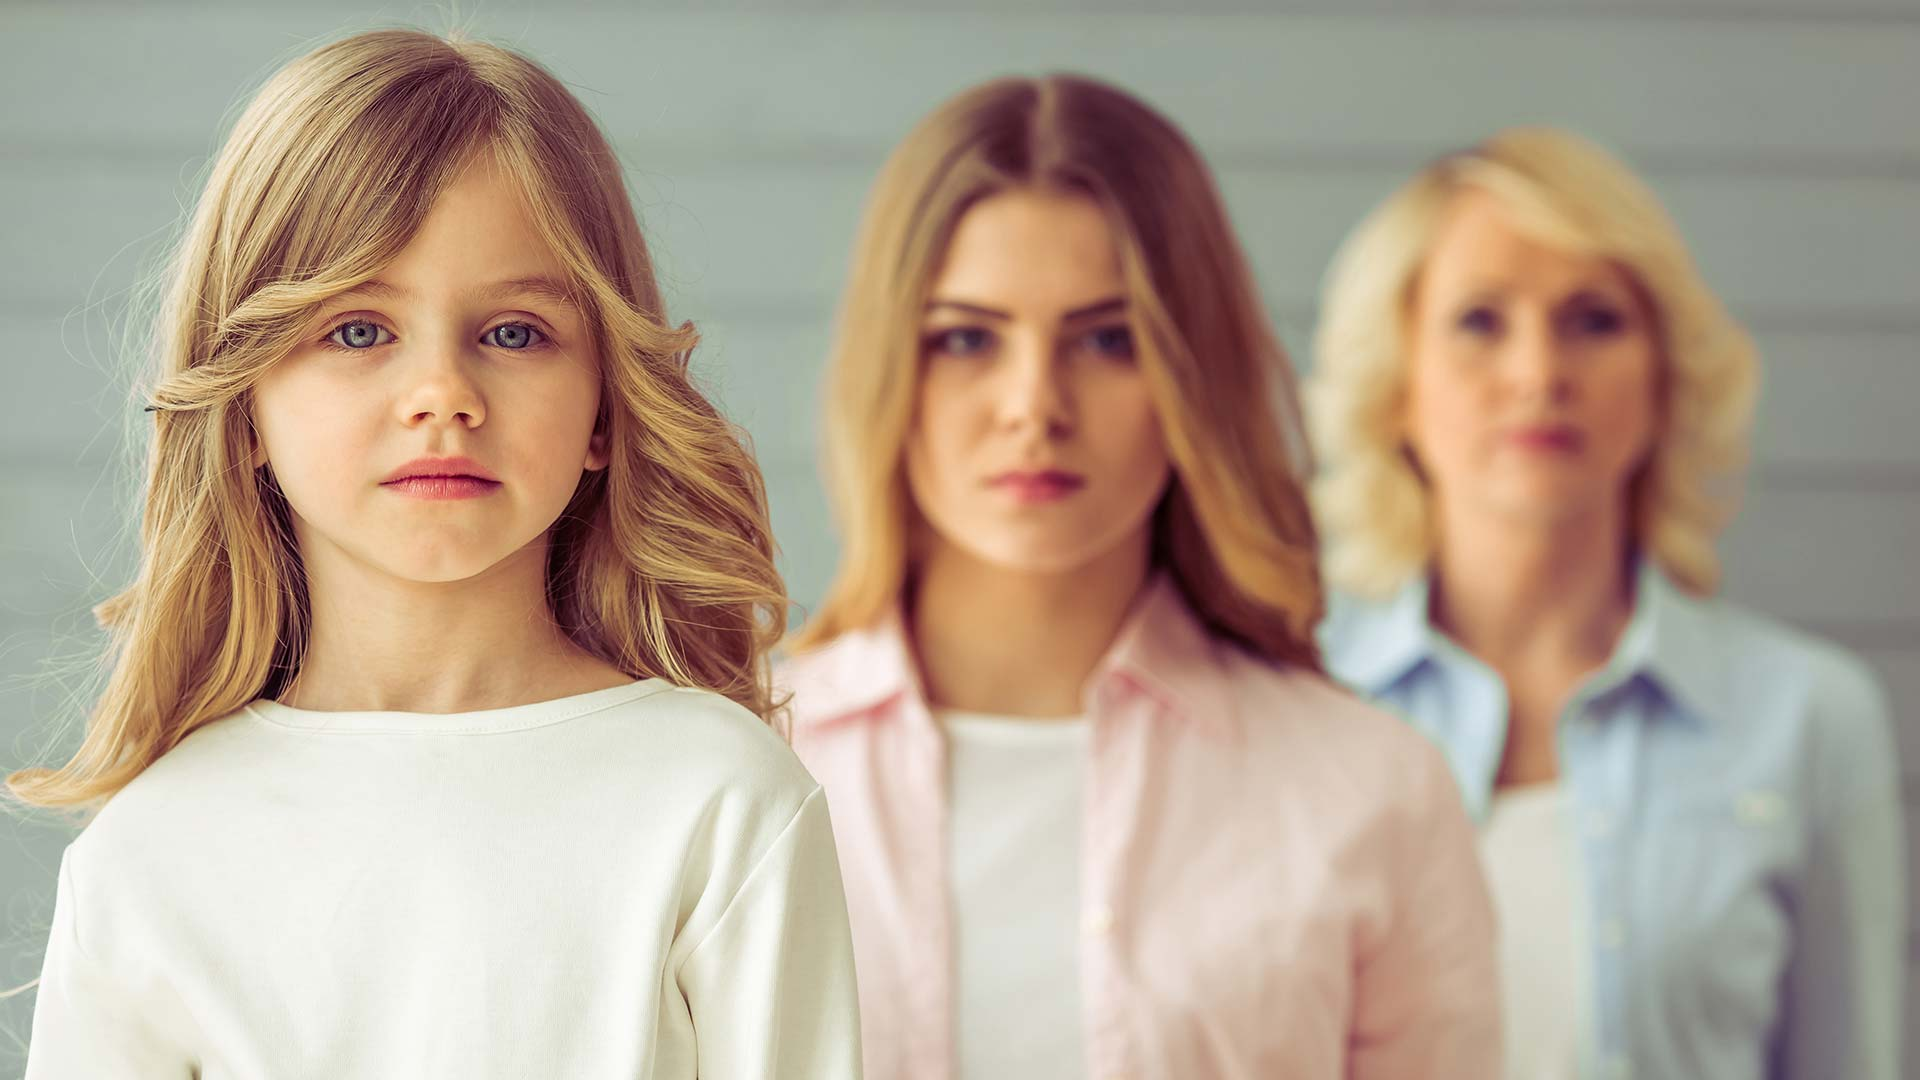 Family Law represented by three generations of women standing in front of each other.